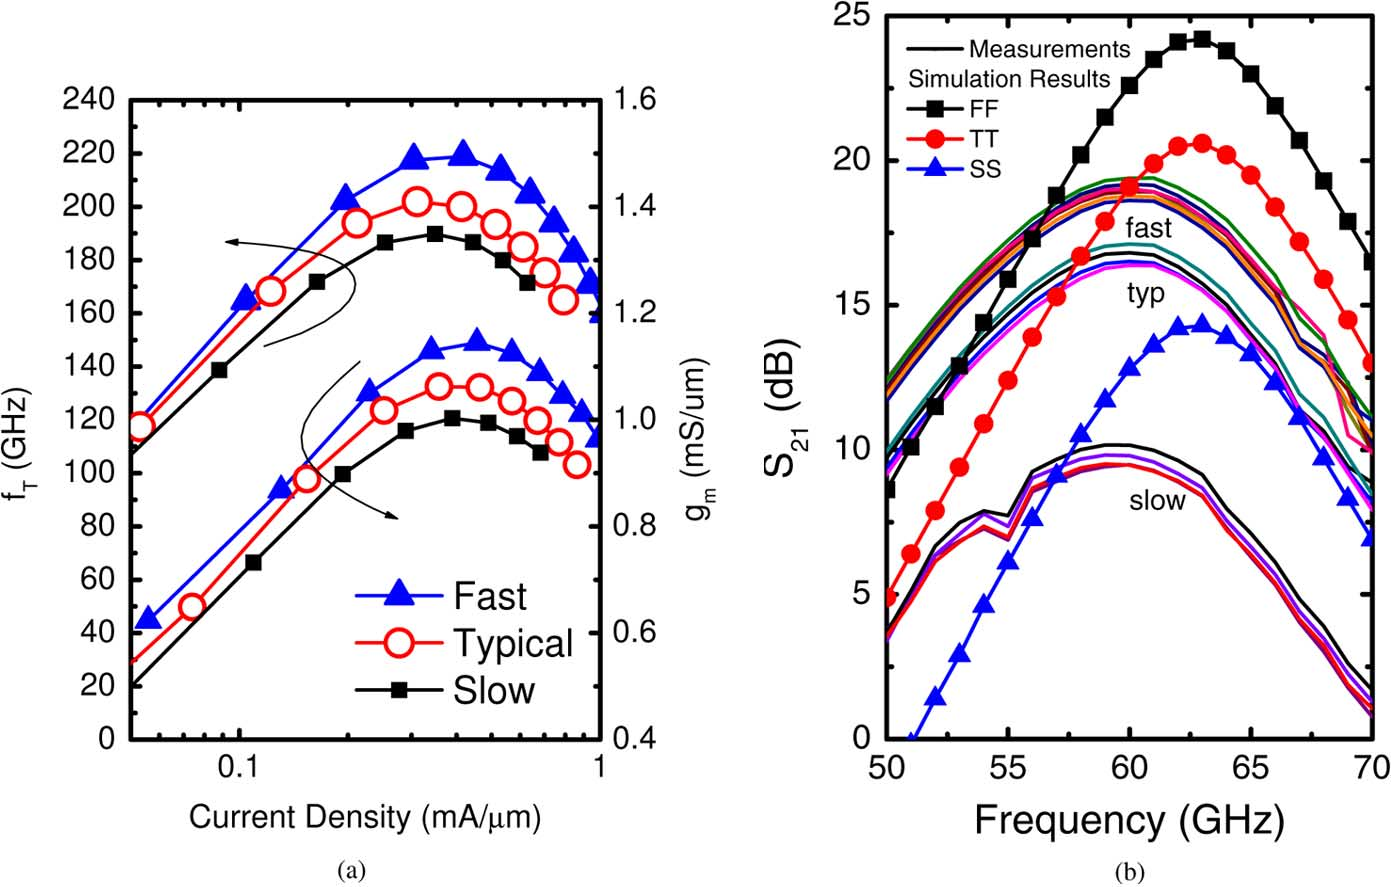 2094 IEEE JOURNAL OF SOLID-STATE CIRCUITS, VOL. 44, NO. 8, AUGUST 2009 Fig. 16. Measured (a) NFET 80 2 1 m2 60 nm f and g, and (b) LNA S over fast, typical, and slow process corners.